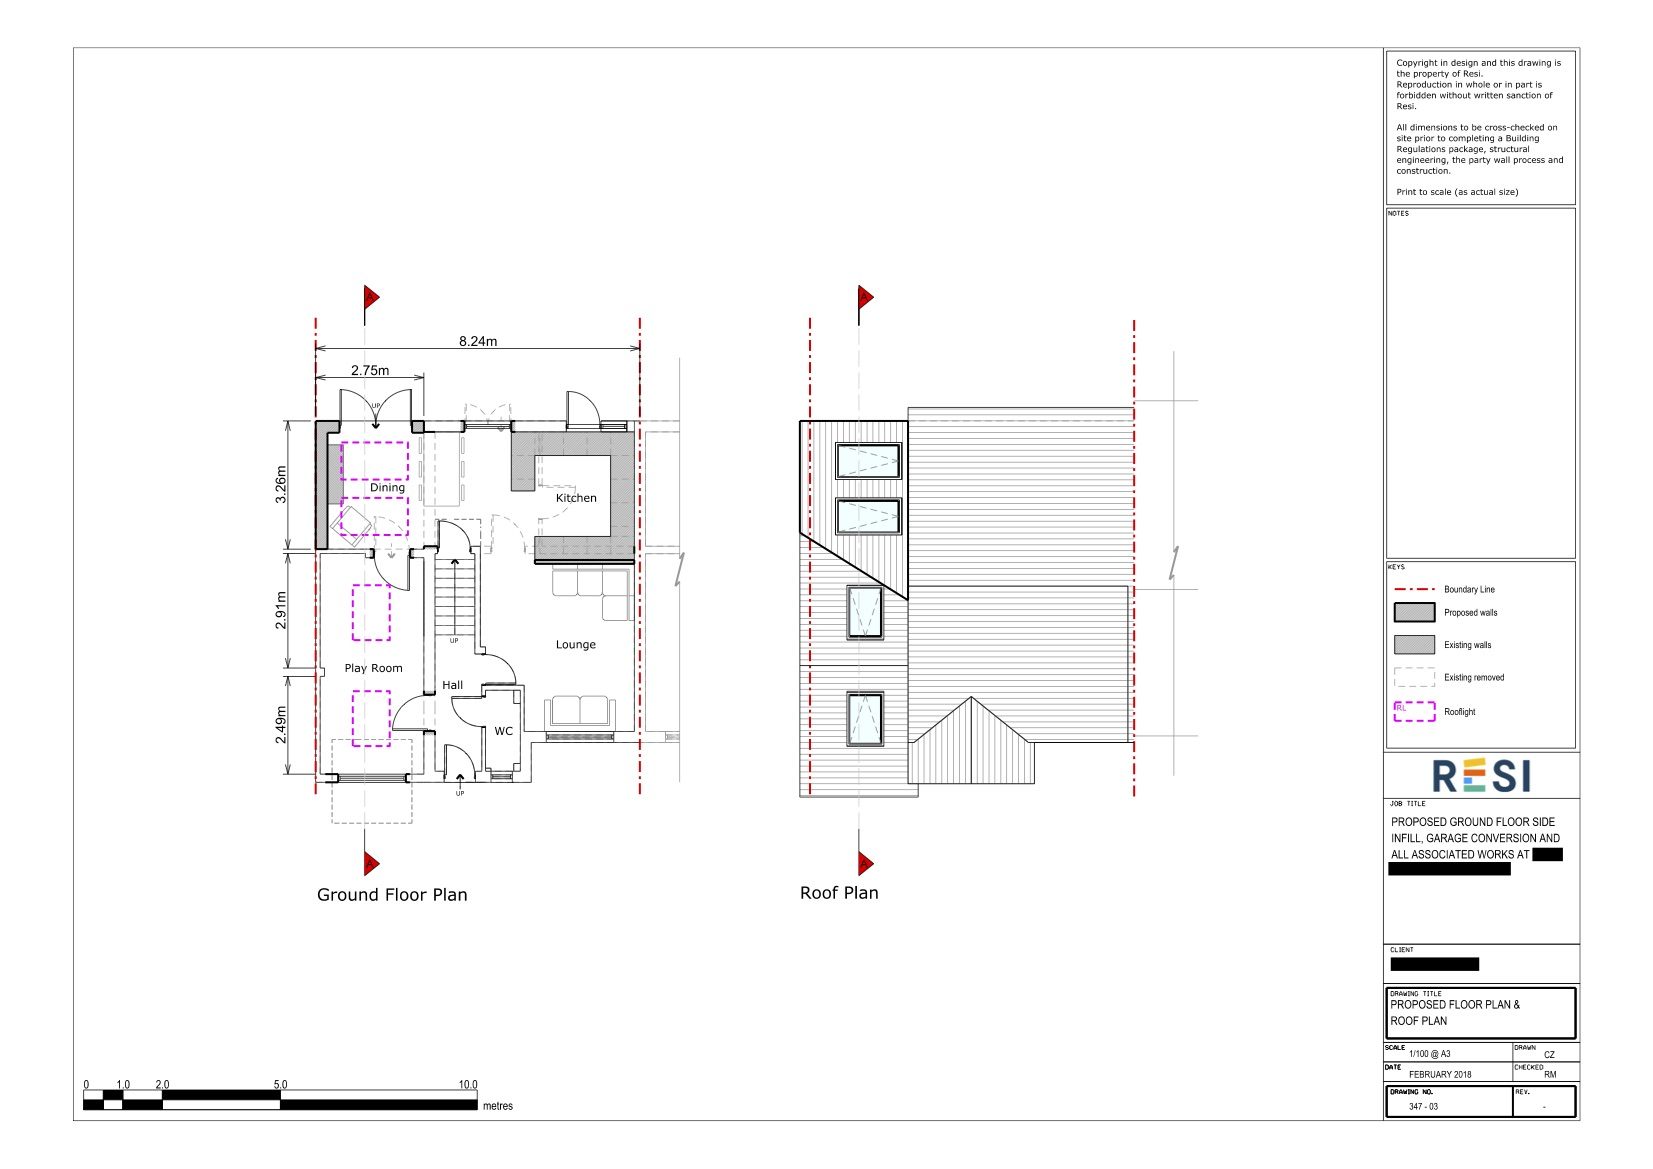 Architectural drawings 20   ground floor and roof plans